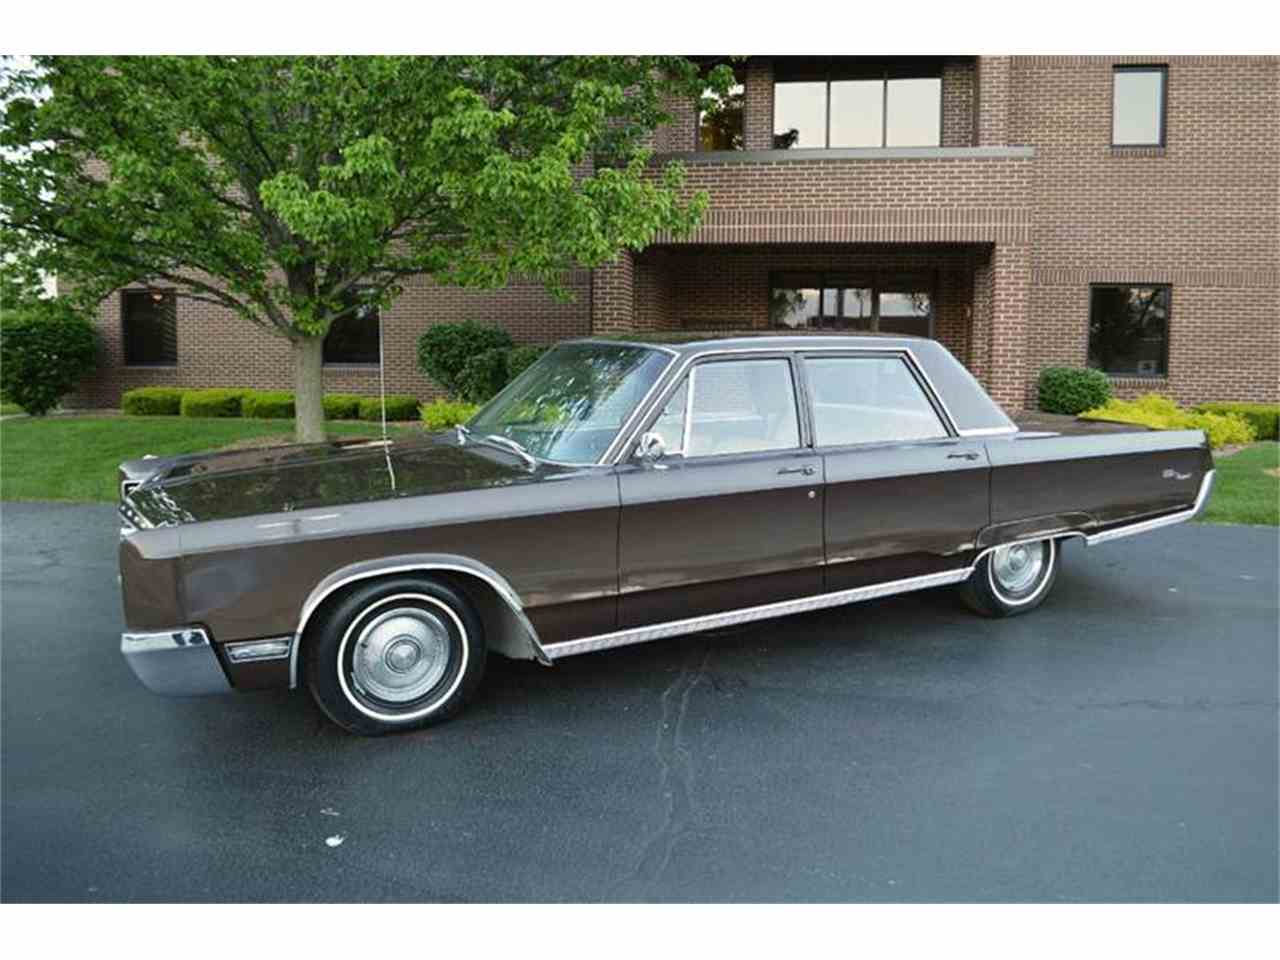 Blake's first car, 1967 Chrysler Newport. Blake's was gold with a black top. But besides the color, this body is identical.